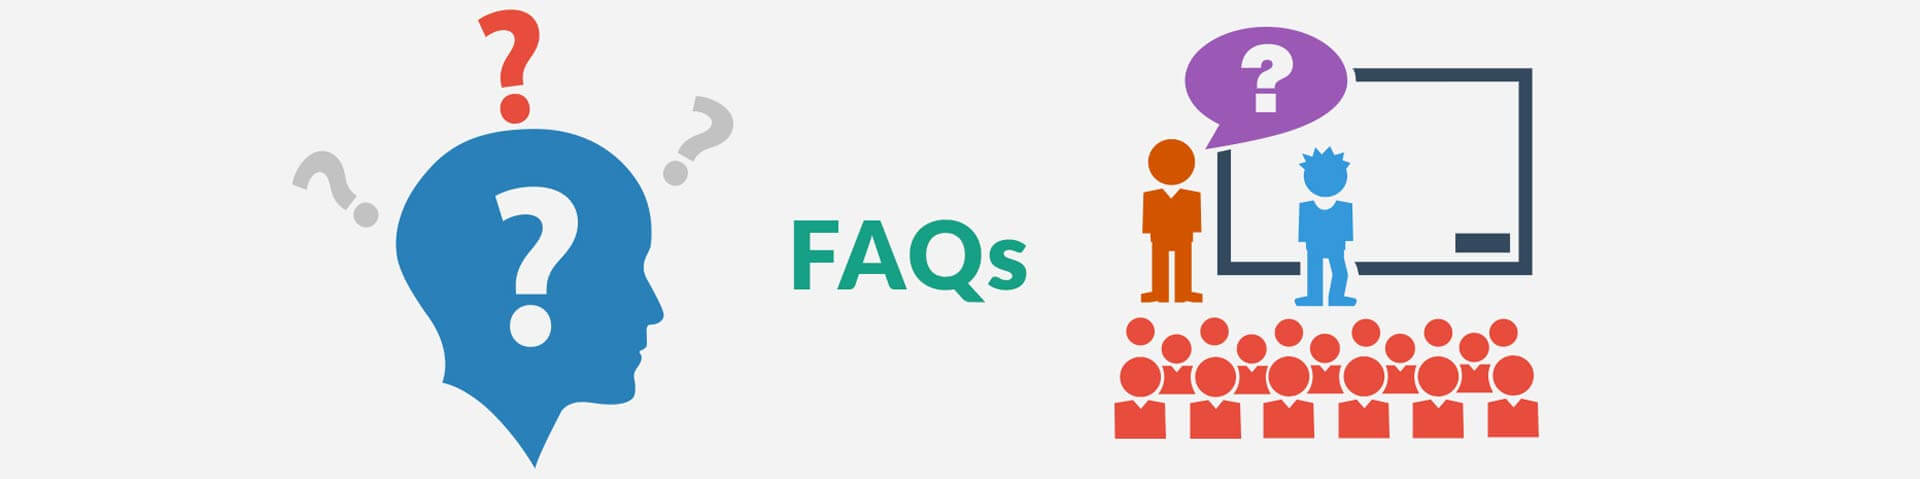 Head icon with question marks; graphic representation of learning in school; the word FAQs between both images.